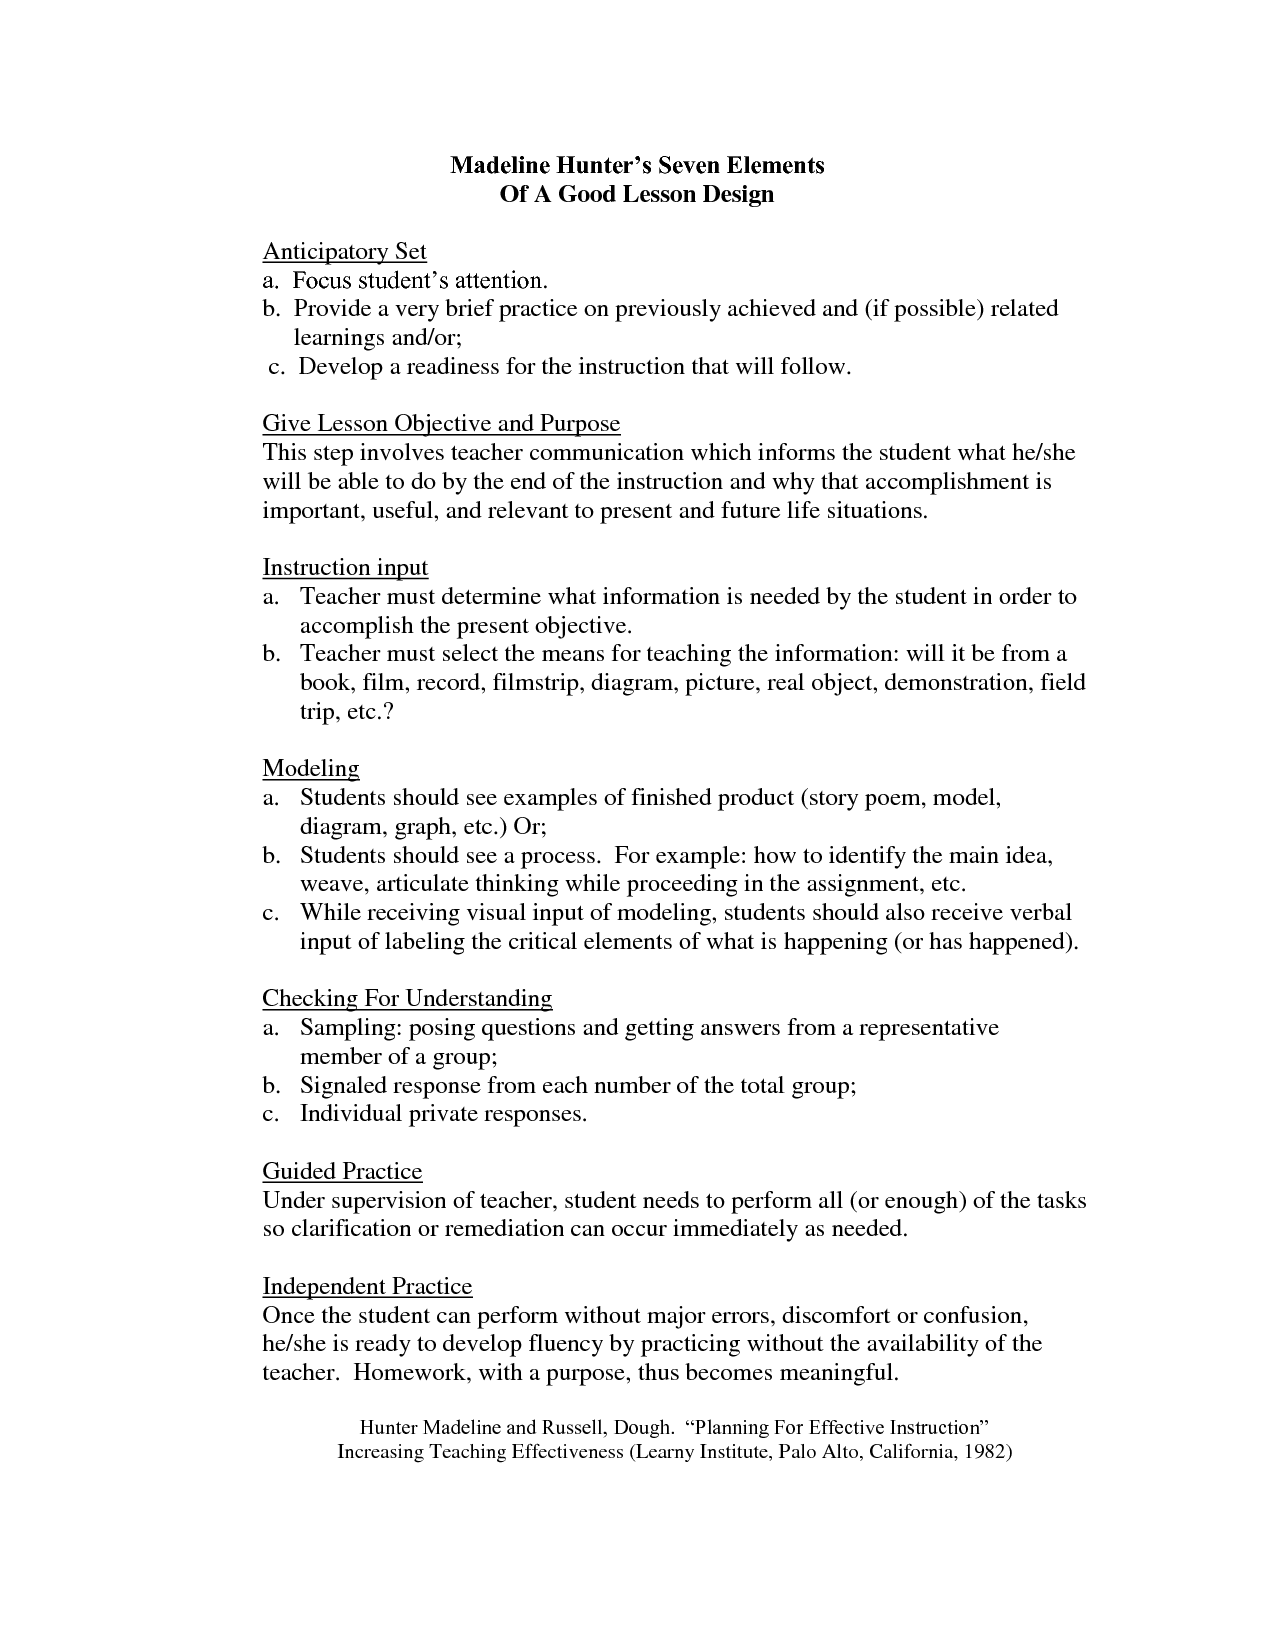 Madeline Hunter Lesson Plan Format Template   Google Search